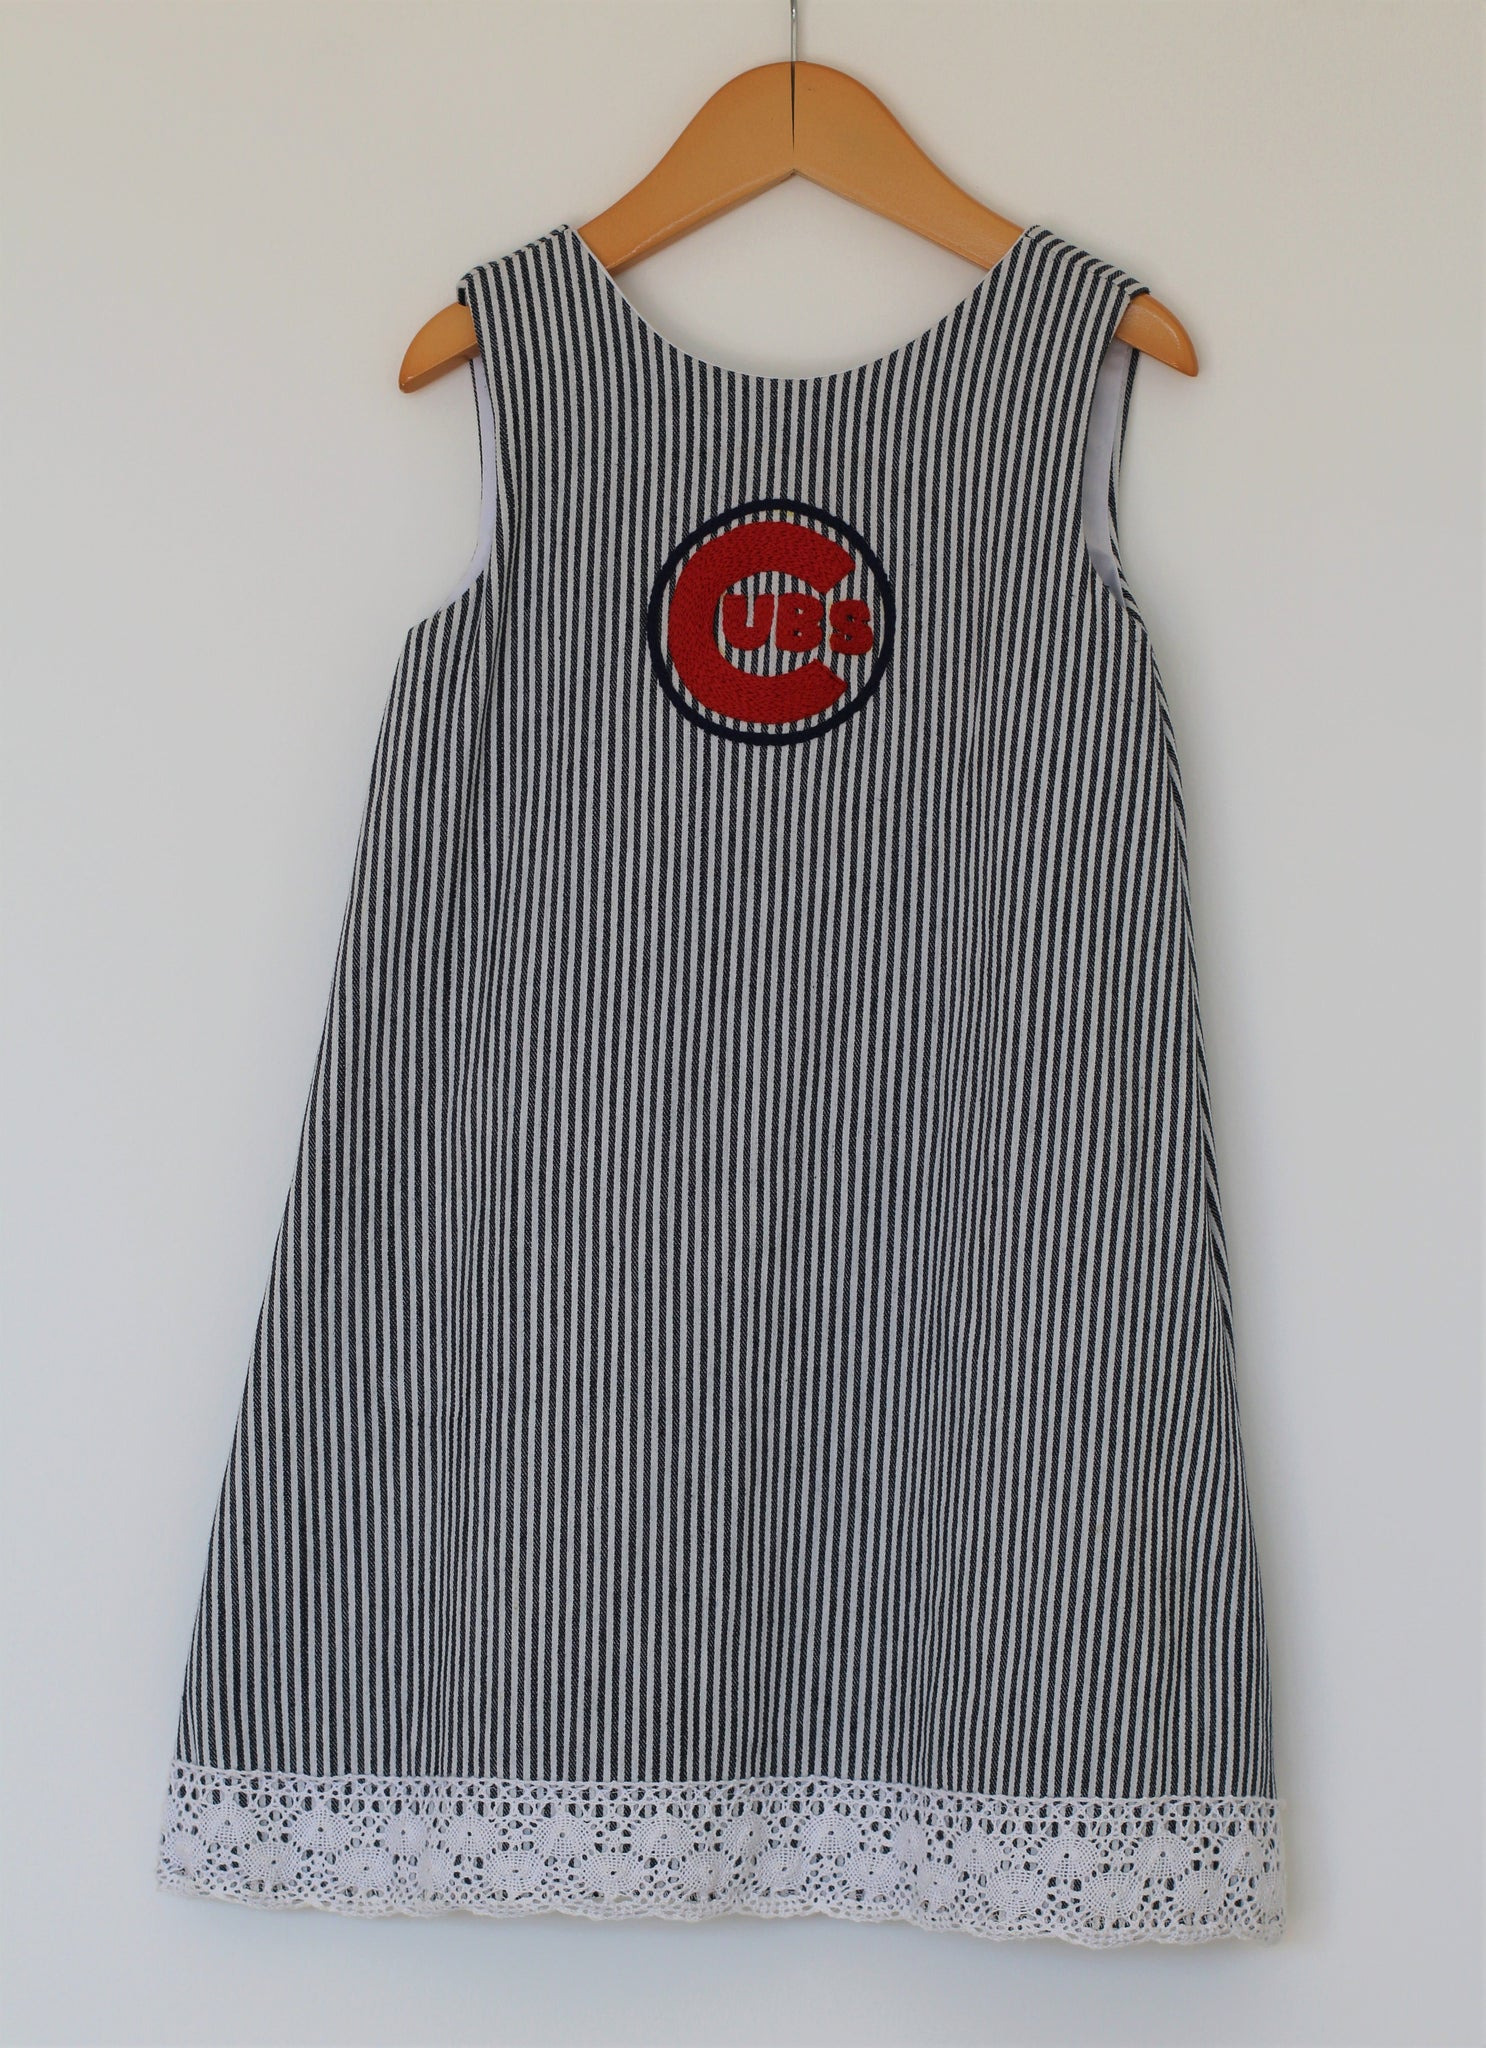 Ballpark Beauties - Bow Back Dress - Cubs - Size 5T - Year End Sale - RTS